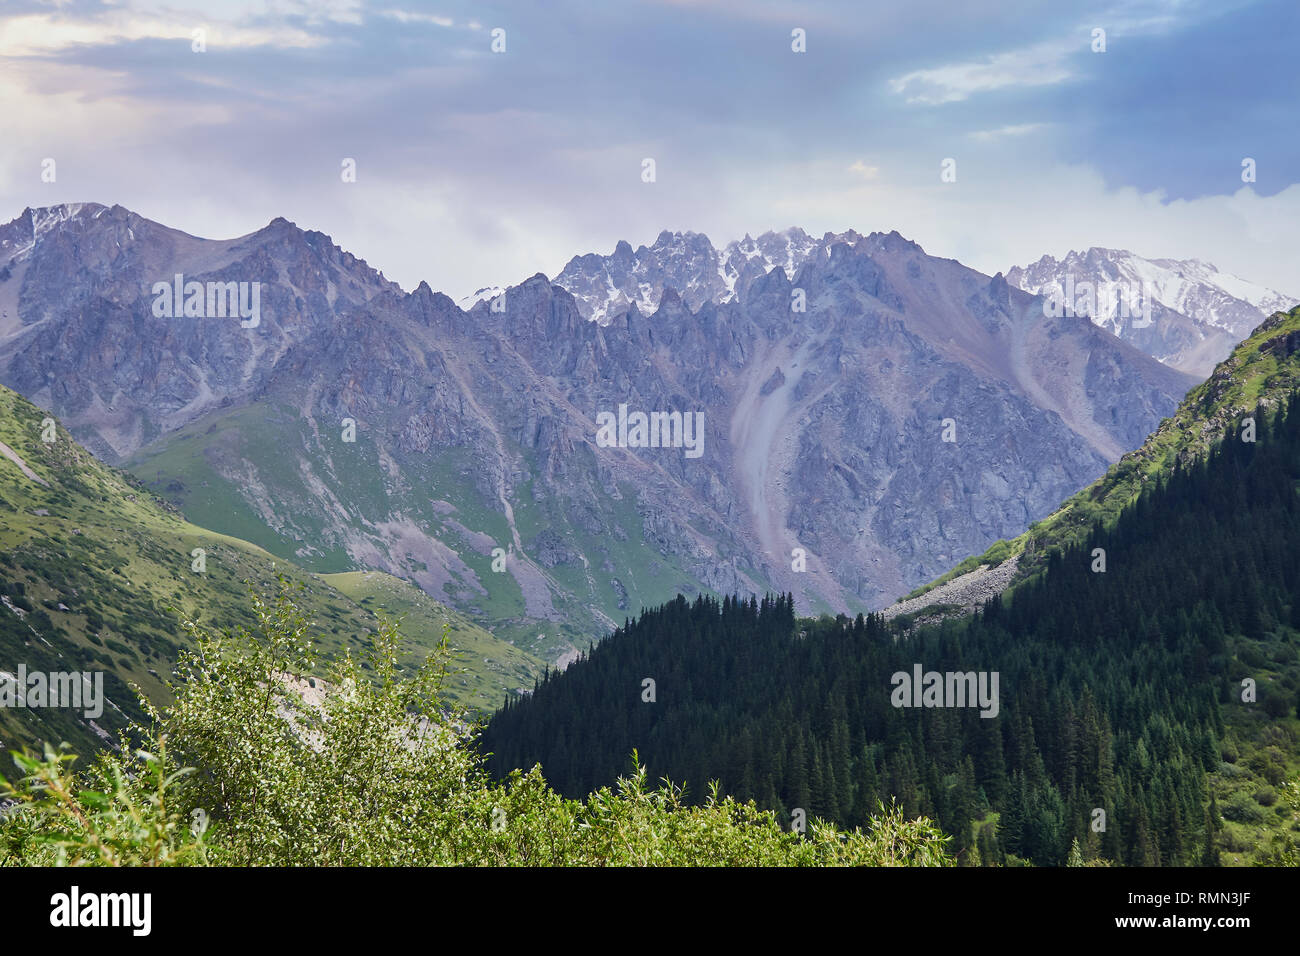 bright greens on the background of mountain peaks with snow-capped peaks, the slopes are covered with tall spruces - Stock Image